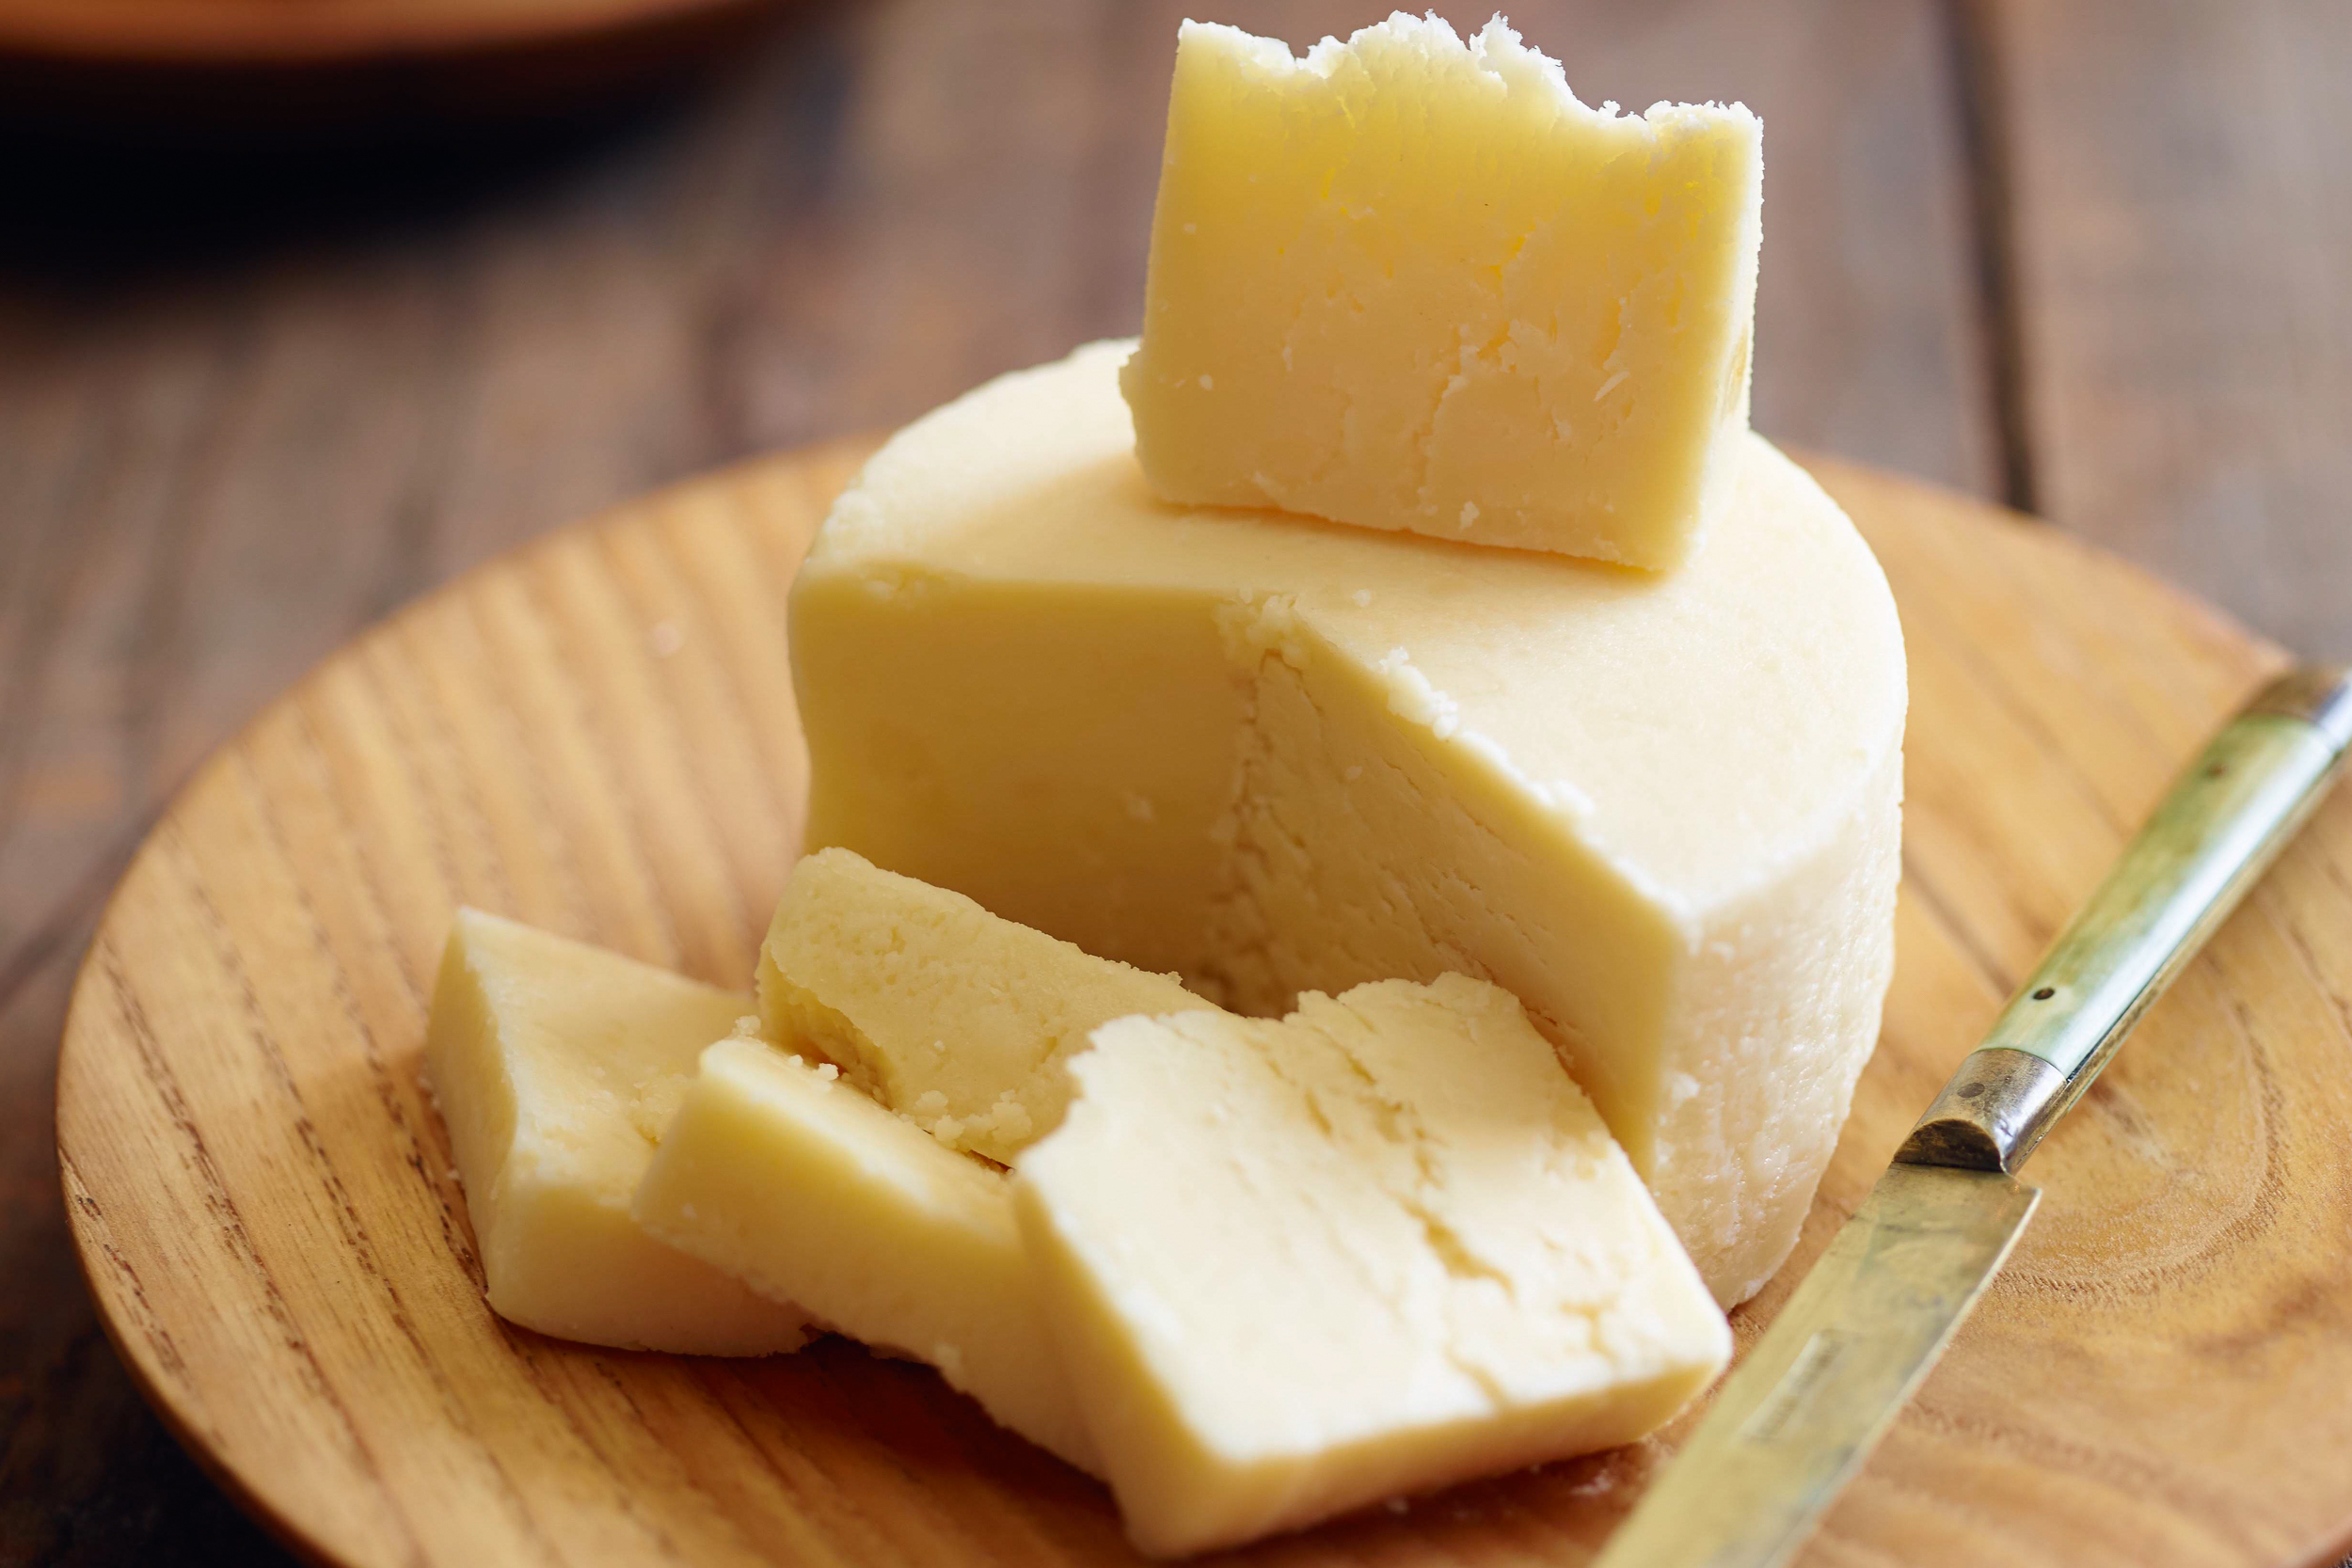 Images of Cheese | 2500x1667